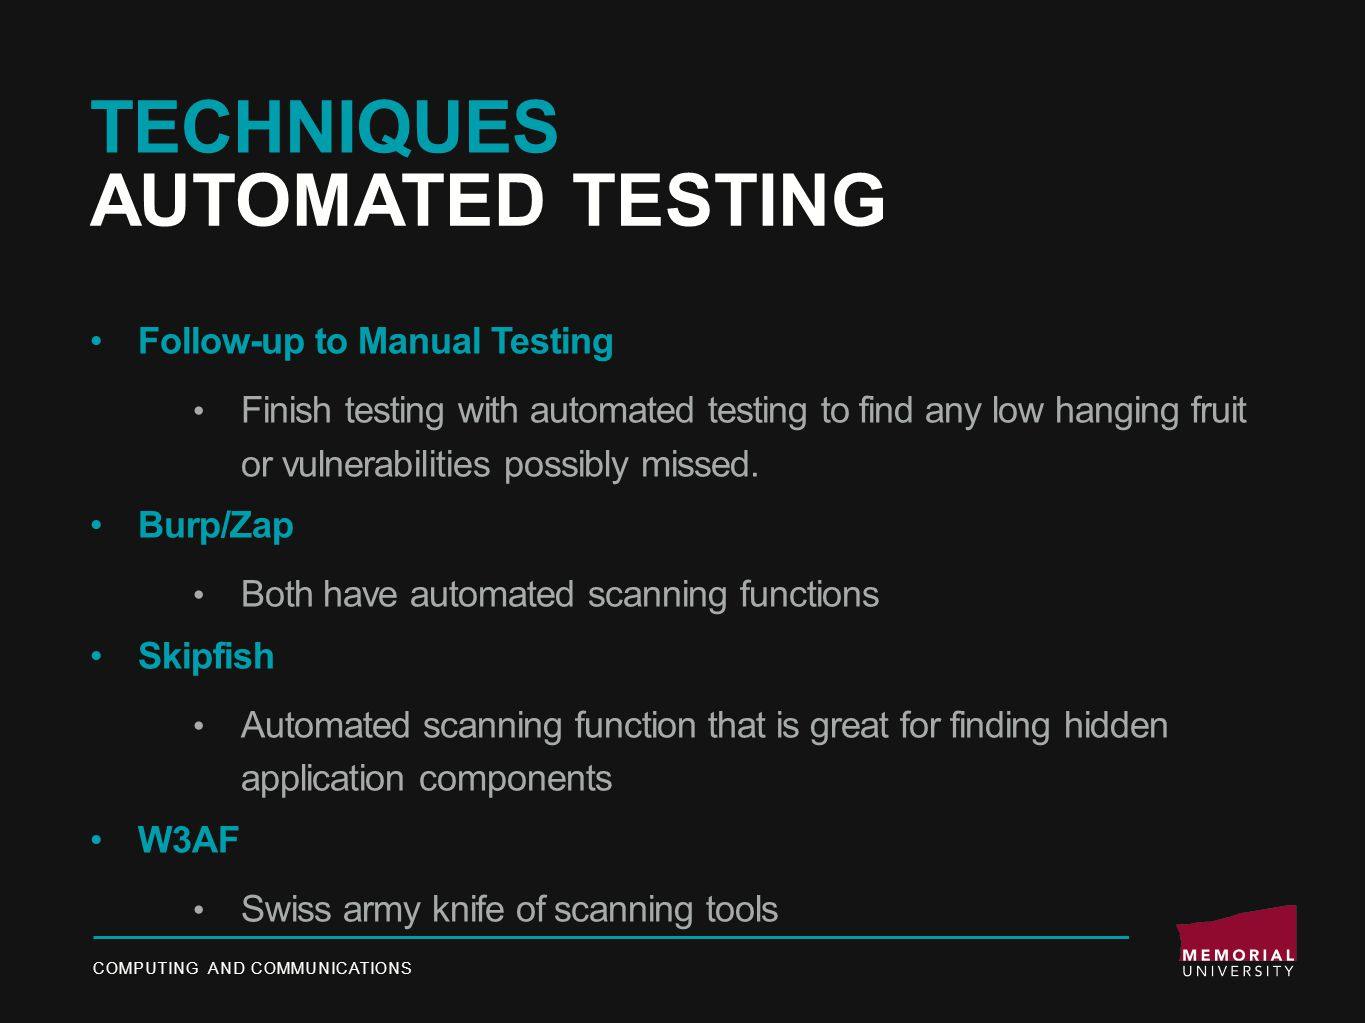 TECHNIQUES AUTOMATED TESTING Follow-up to Manual Testing Finish testing with automated testing to find any low hanging fruit or vulnerabilities possibly missed.